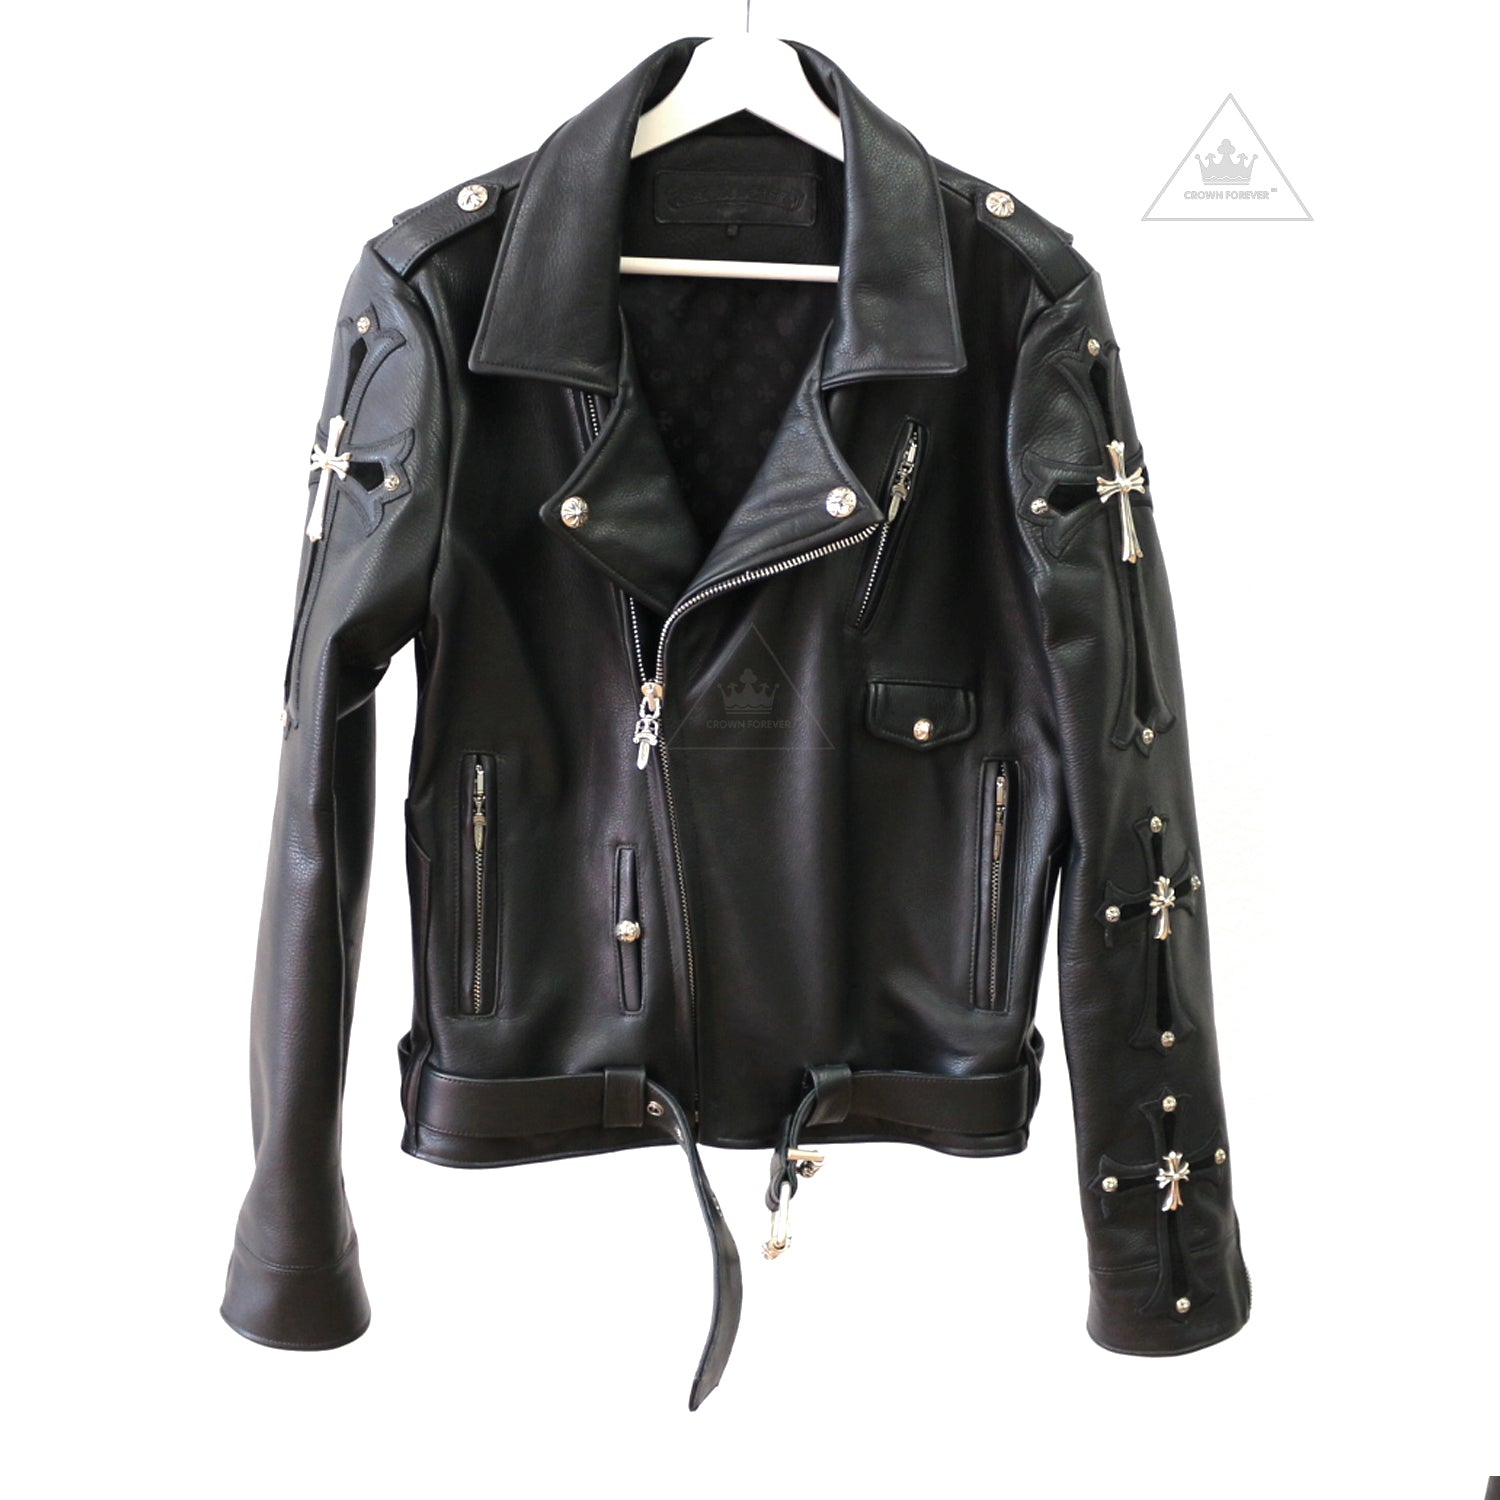 d1d8117b3ce Chrome Hearts Limited Cross Leather Biker Jacket – Crown Forever